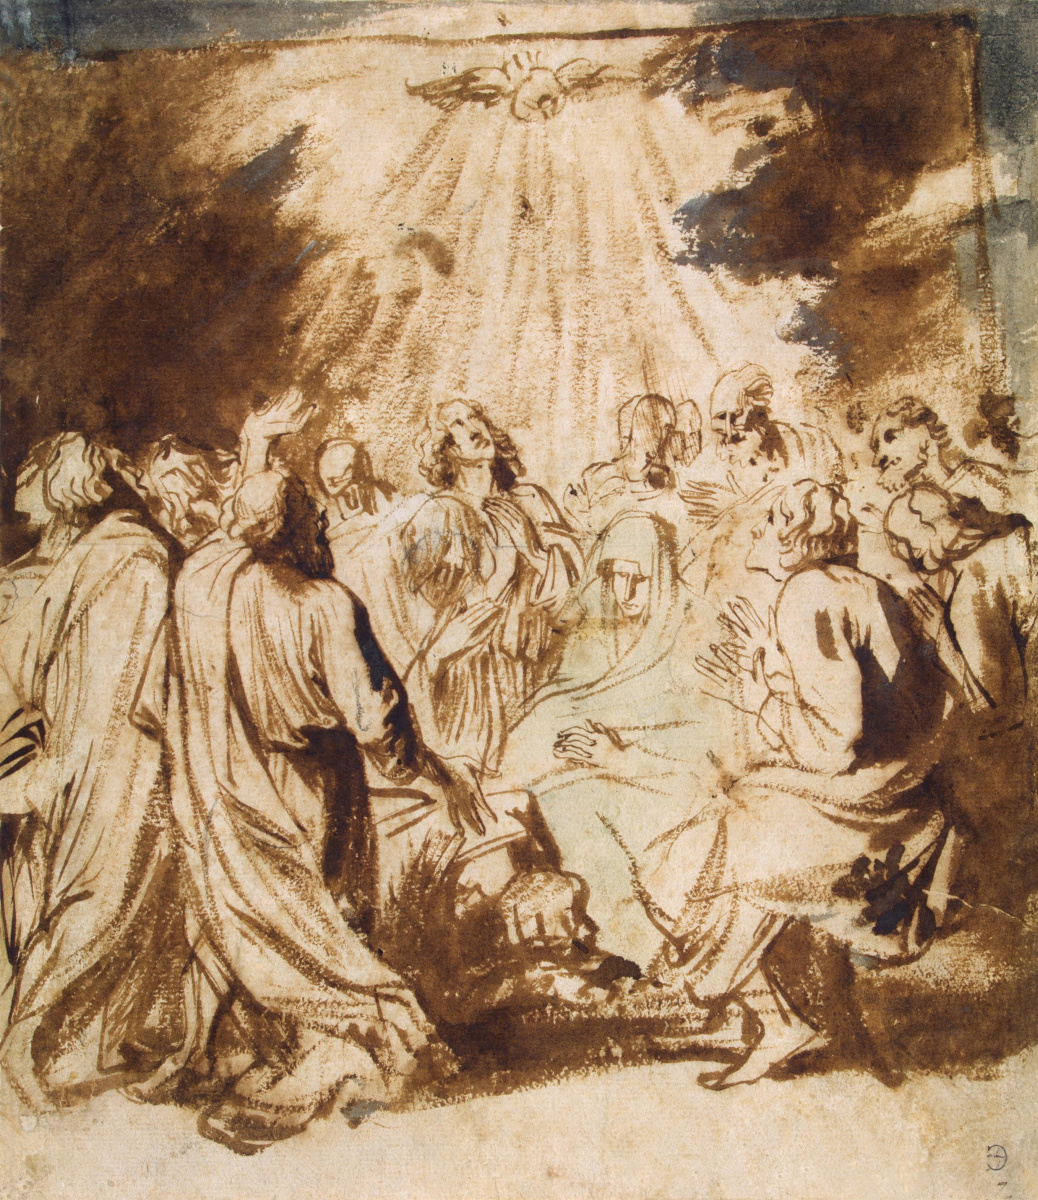 Anthony van Dyck. The descent of the Holy spirit on the apostles